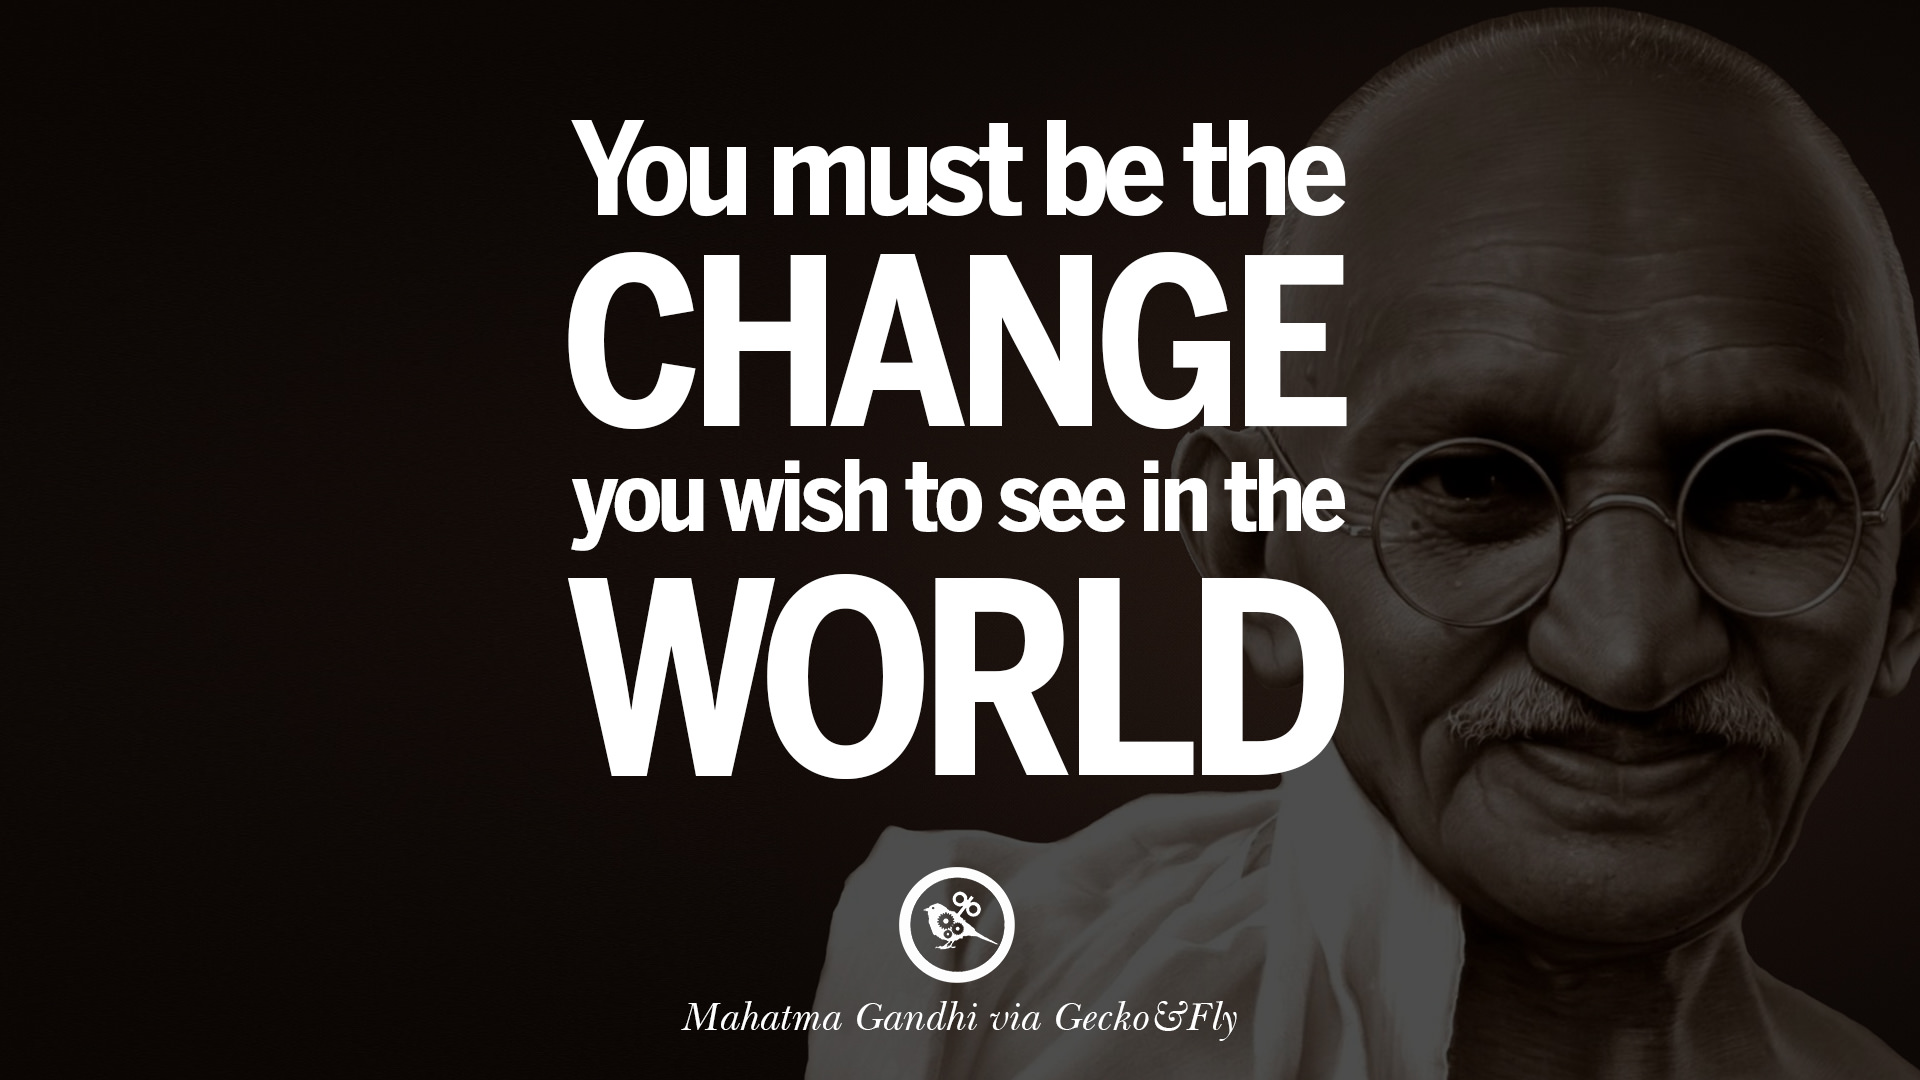 28 Mahatma Gandhi Quotes And Frases On Peace Protest And Civil Liberties